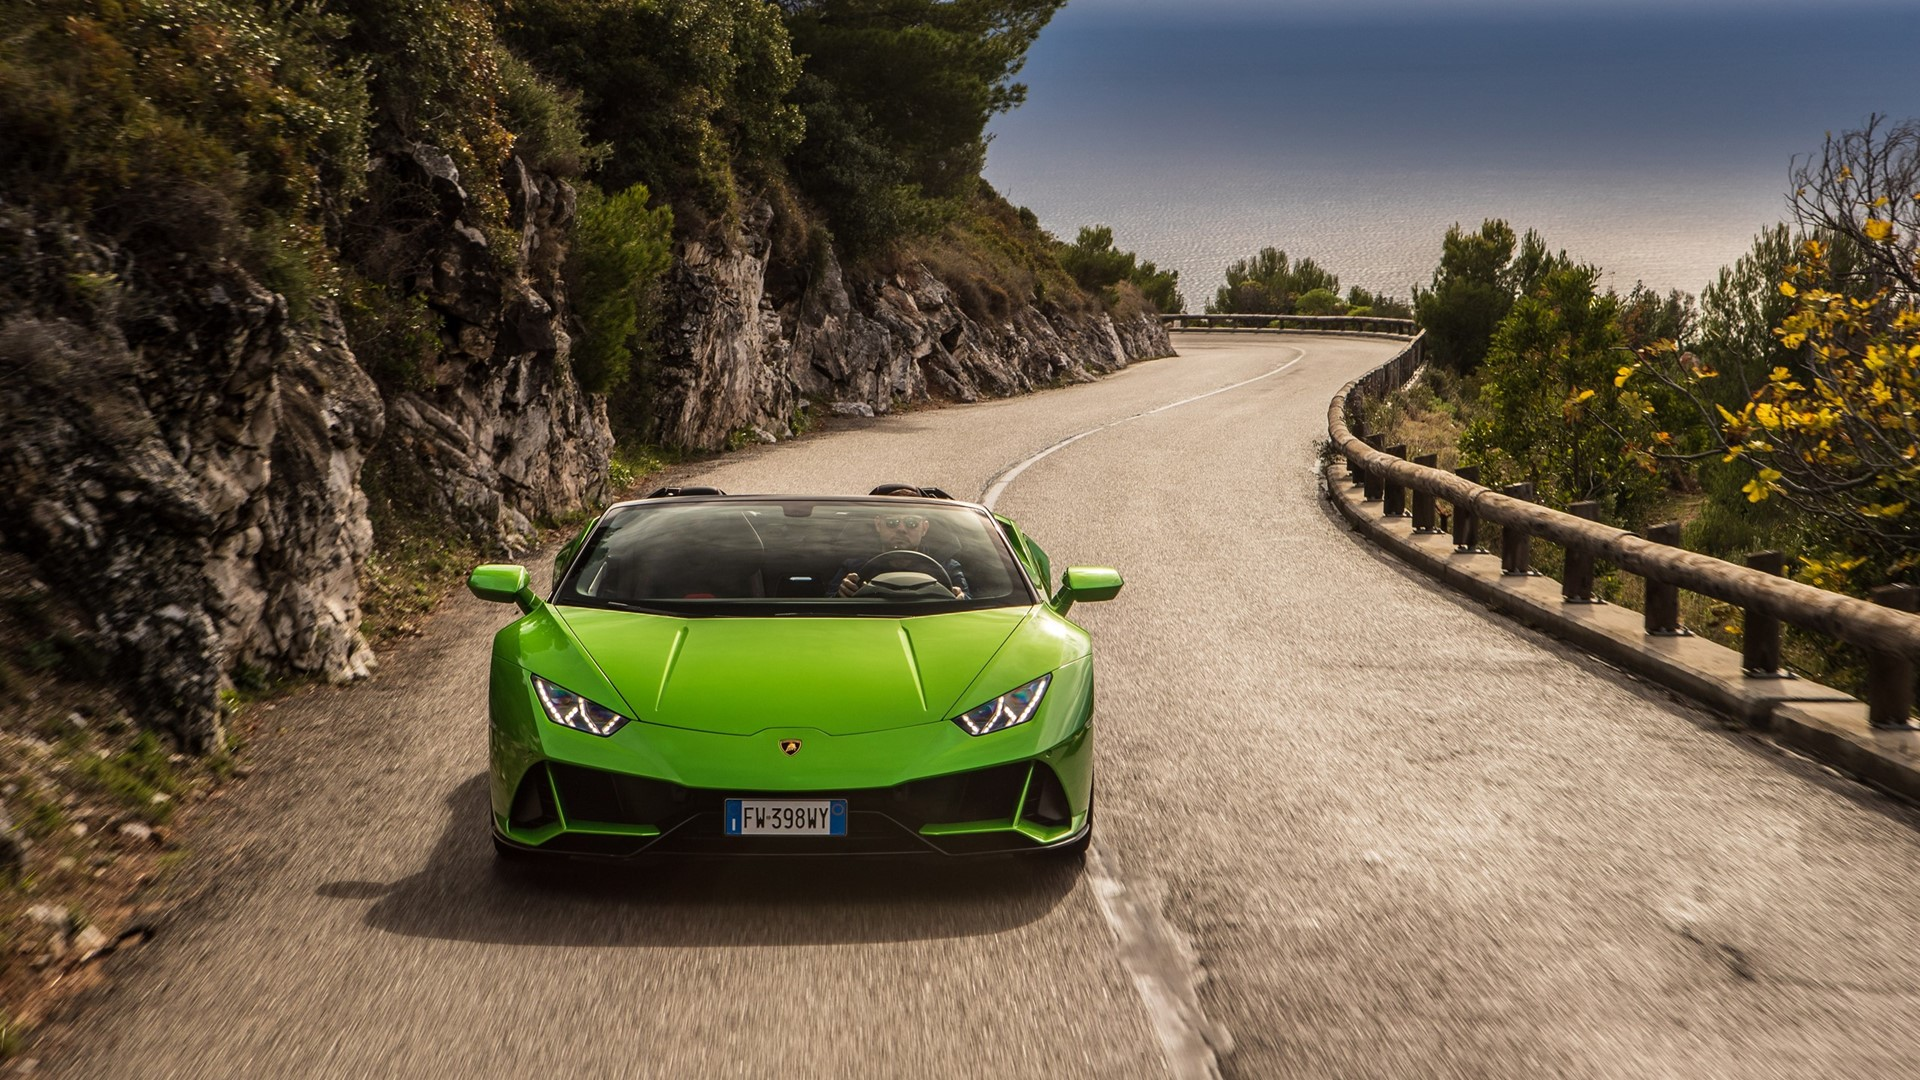 Automobili Lamborghini continues its global growth and marks new historic highs: 8,205 cars delivered in 2019 - Image 1